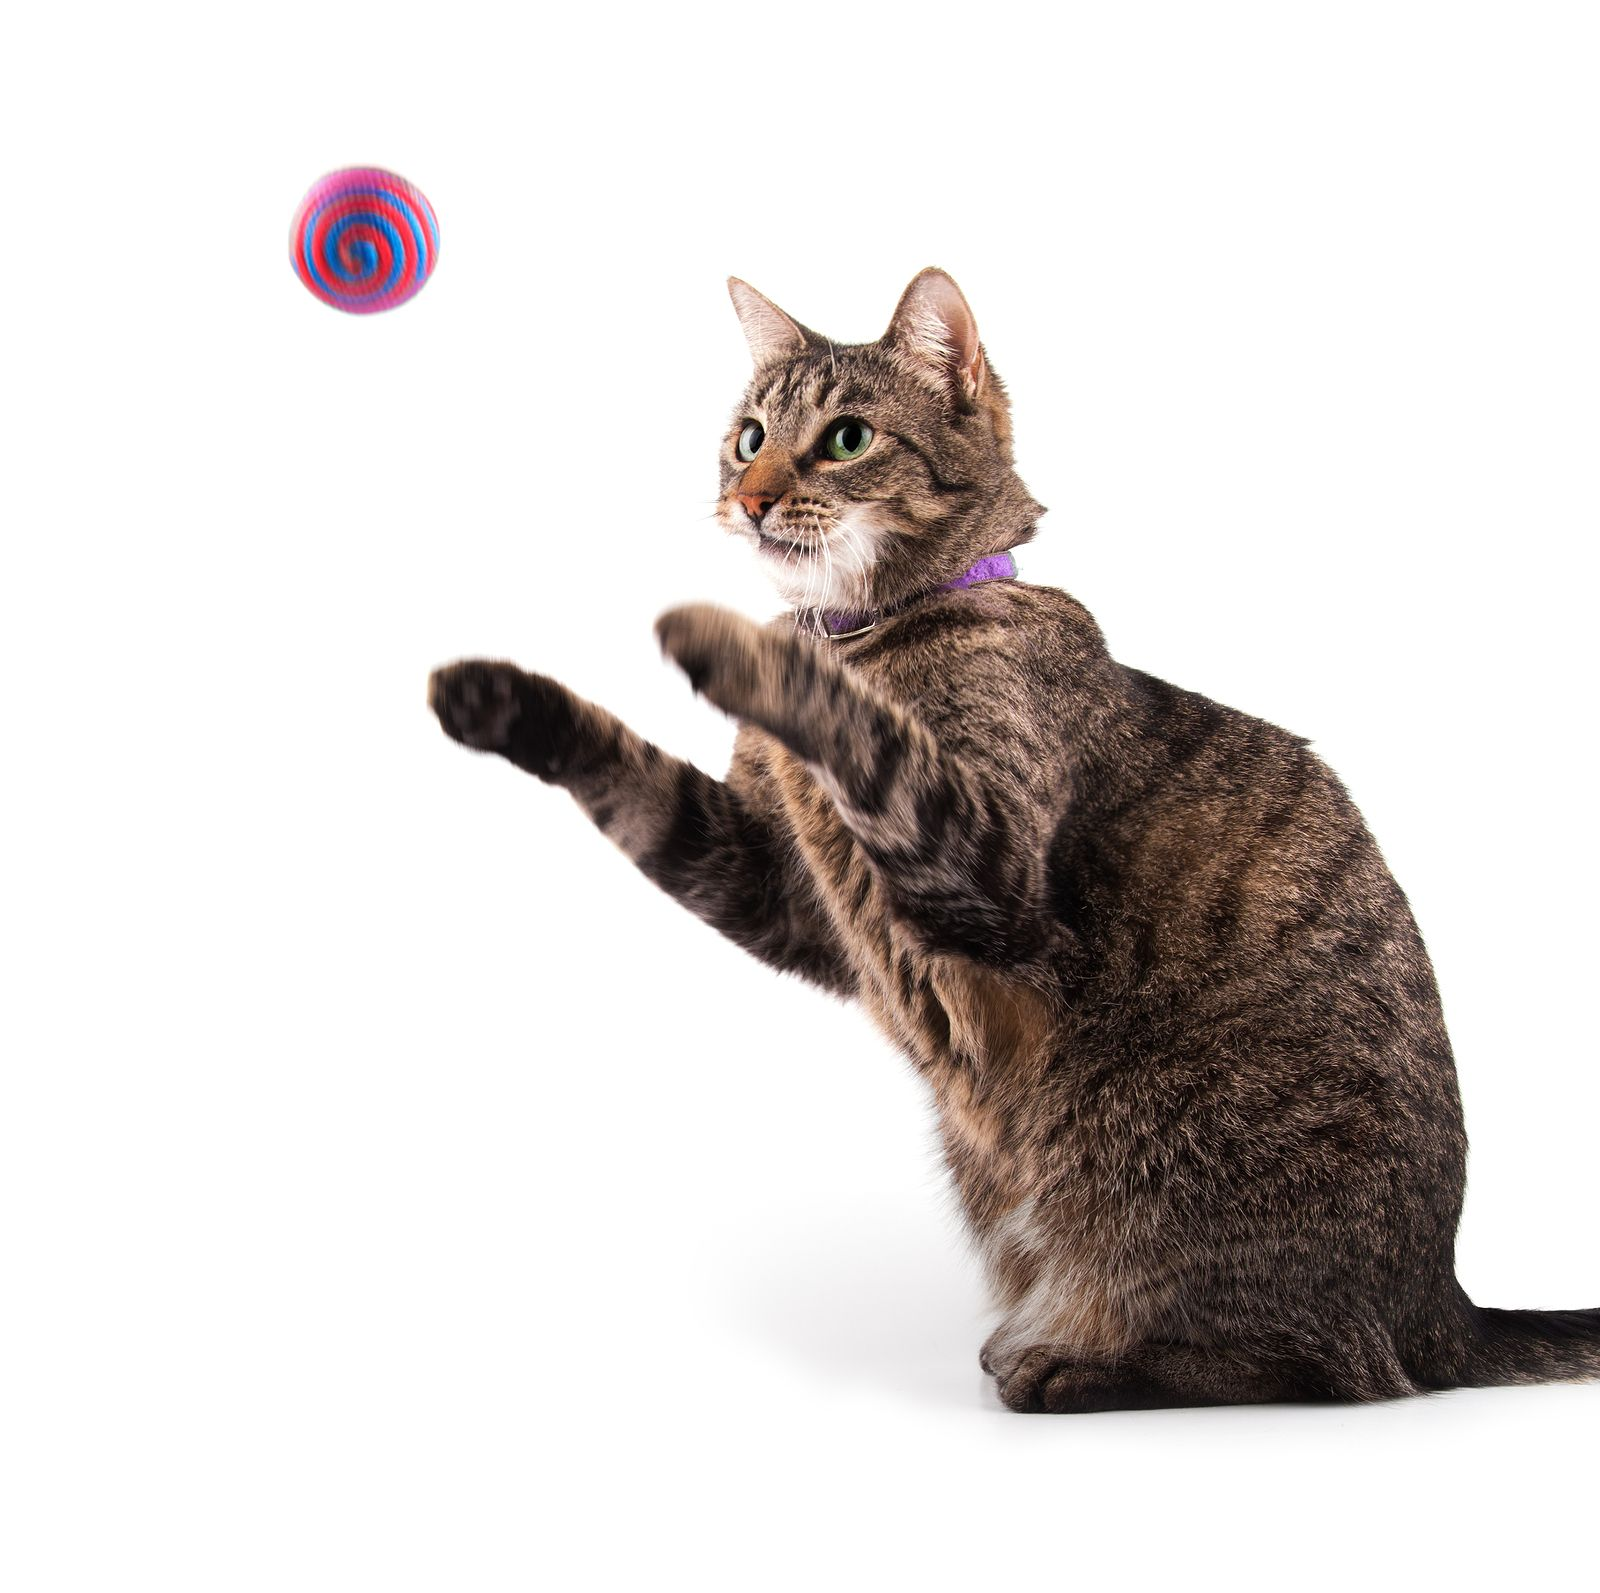 5 Fun Ways To Exercise Your Cat Cats And Kittens Cute Cats Cats